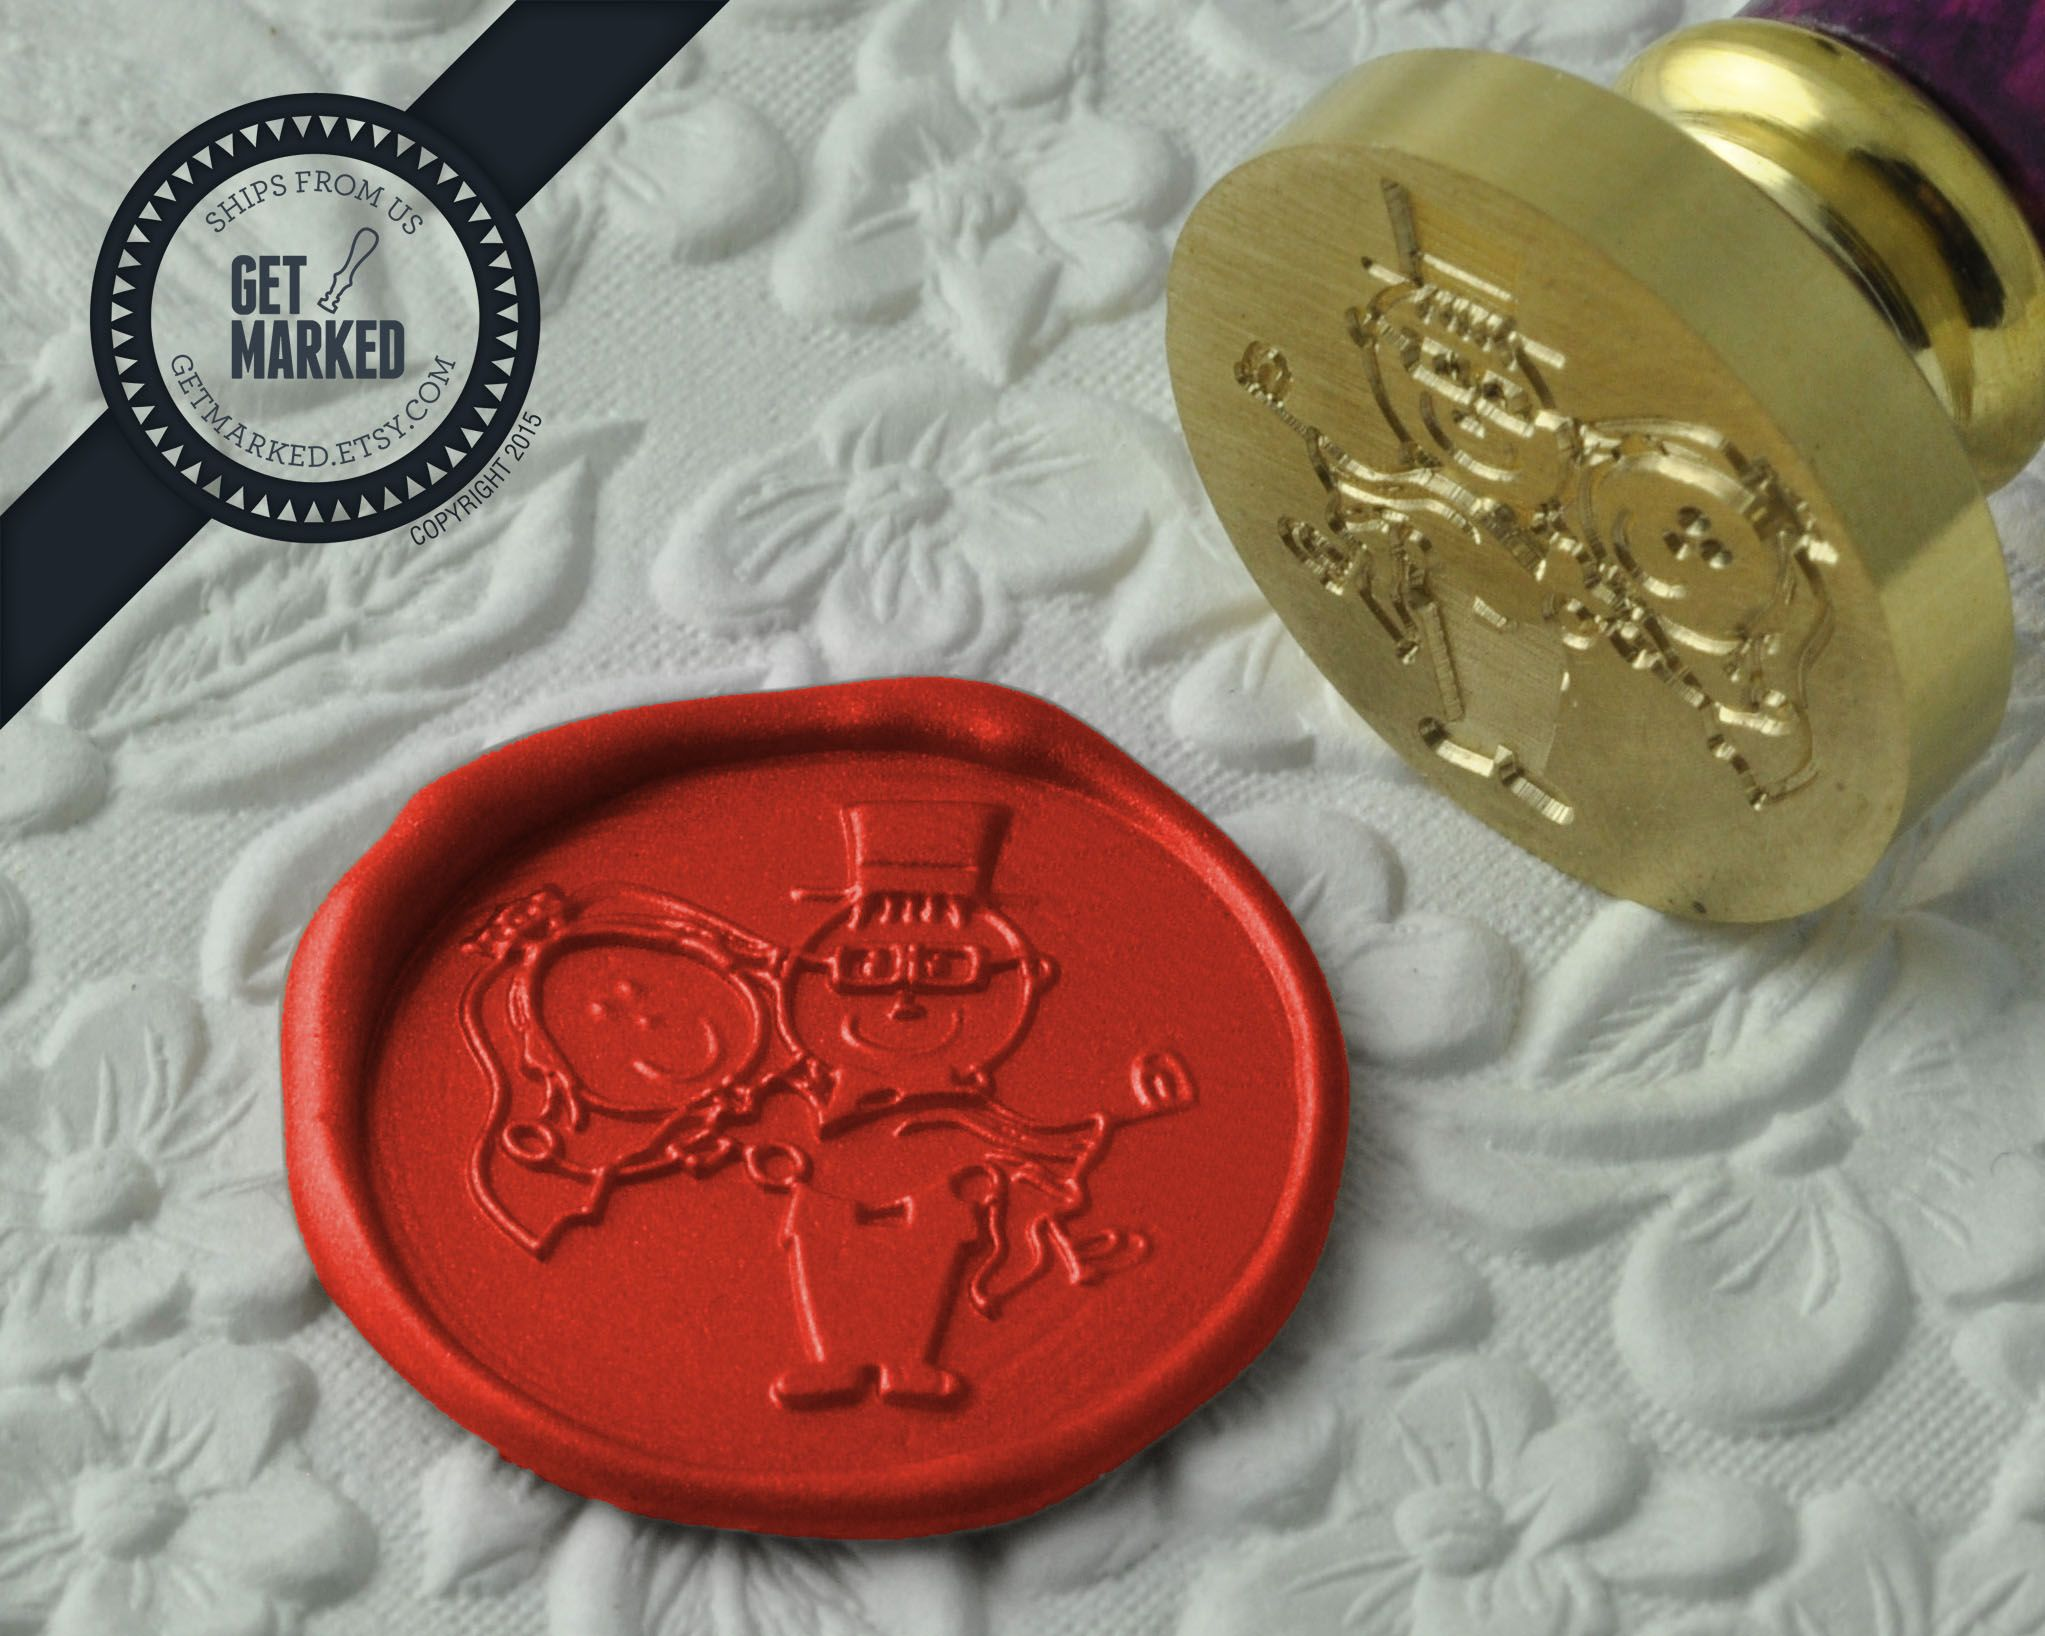 Bride & Groom - Wax Seal Stamp by Get Marked - Wedding Collection ...